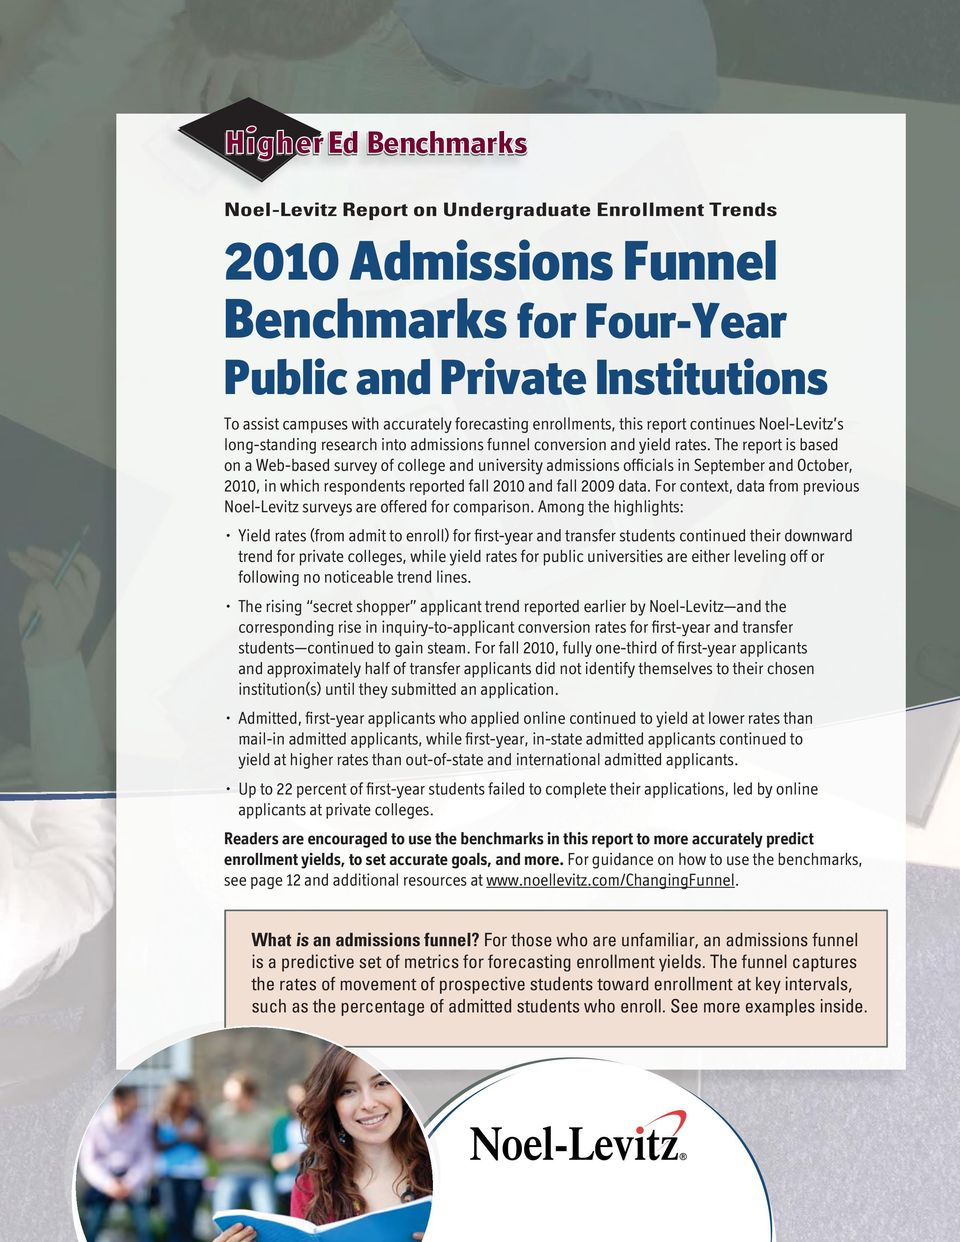 The report is based on a Web-based survey of college and university admissions officials in September and October, 2010, in which respondents reported fall 2010 and fall 2009 data.